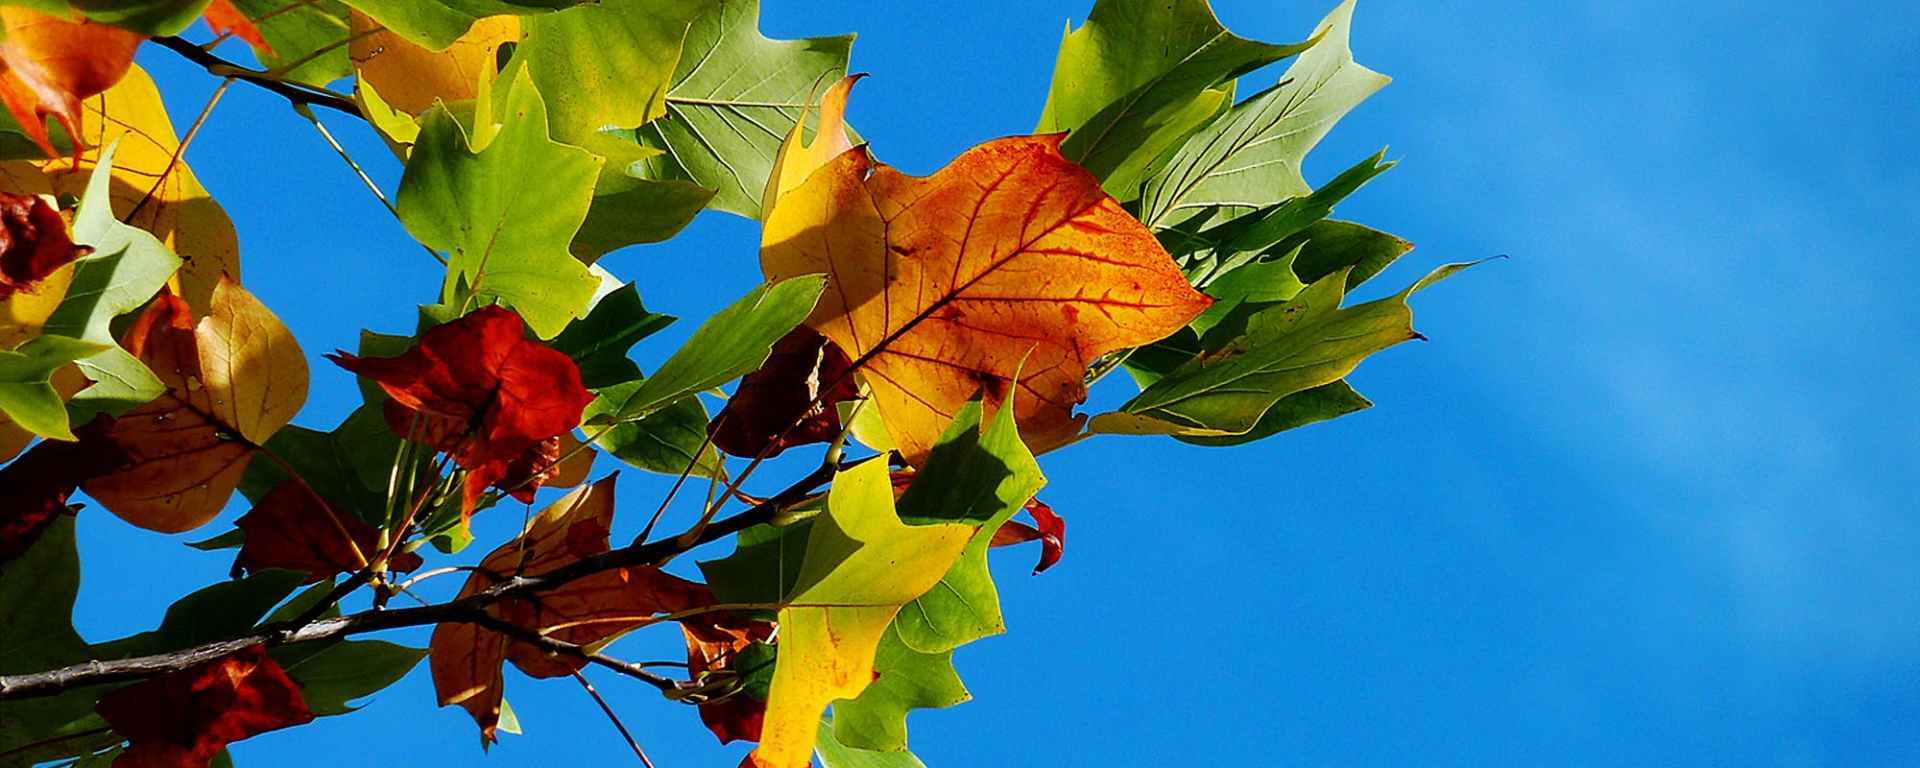 autumn leaves on tree against blue sky